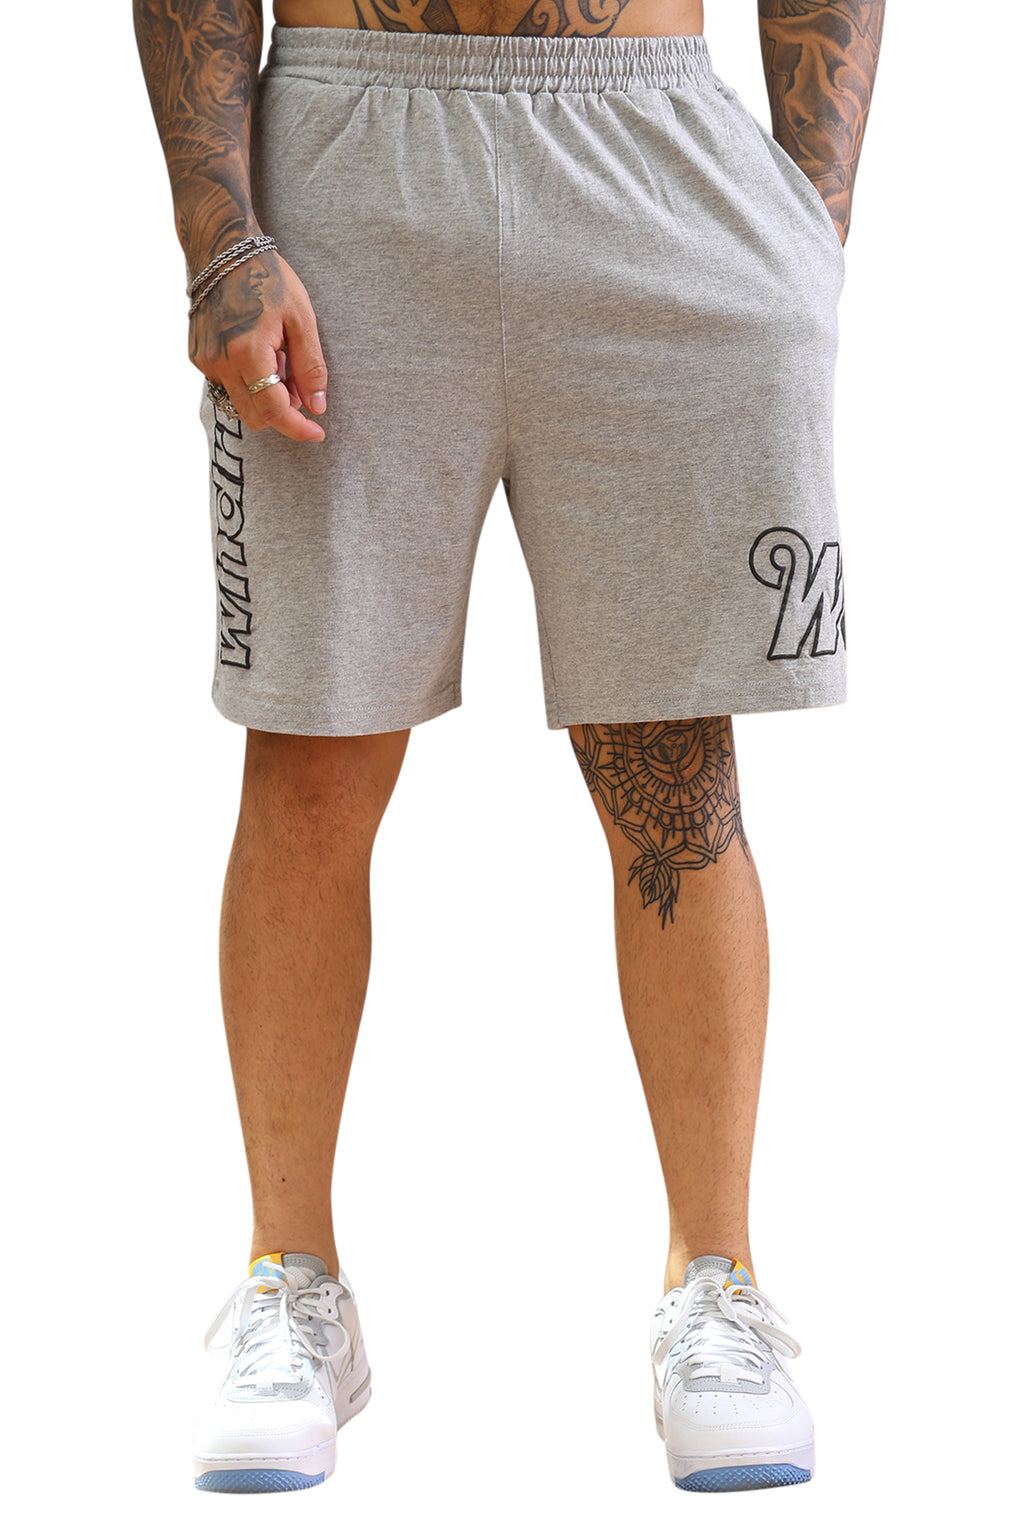 WNDRR Blockshot Track Short Grey Marle